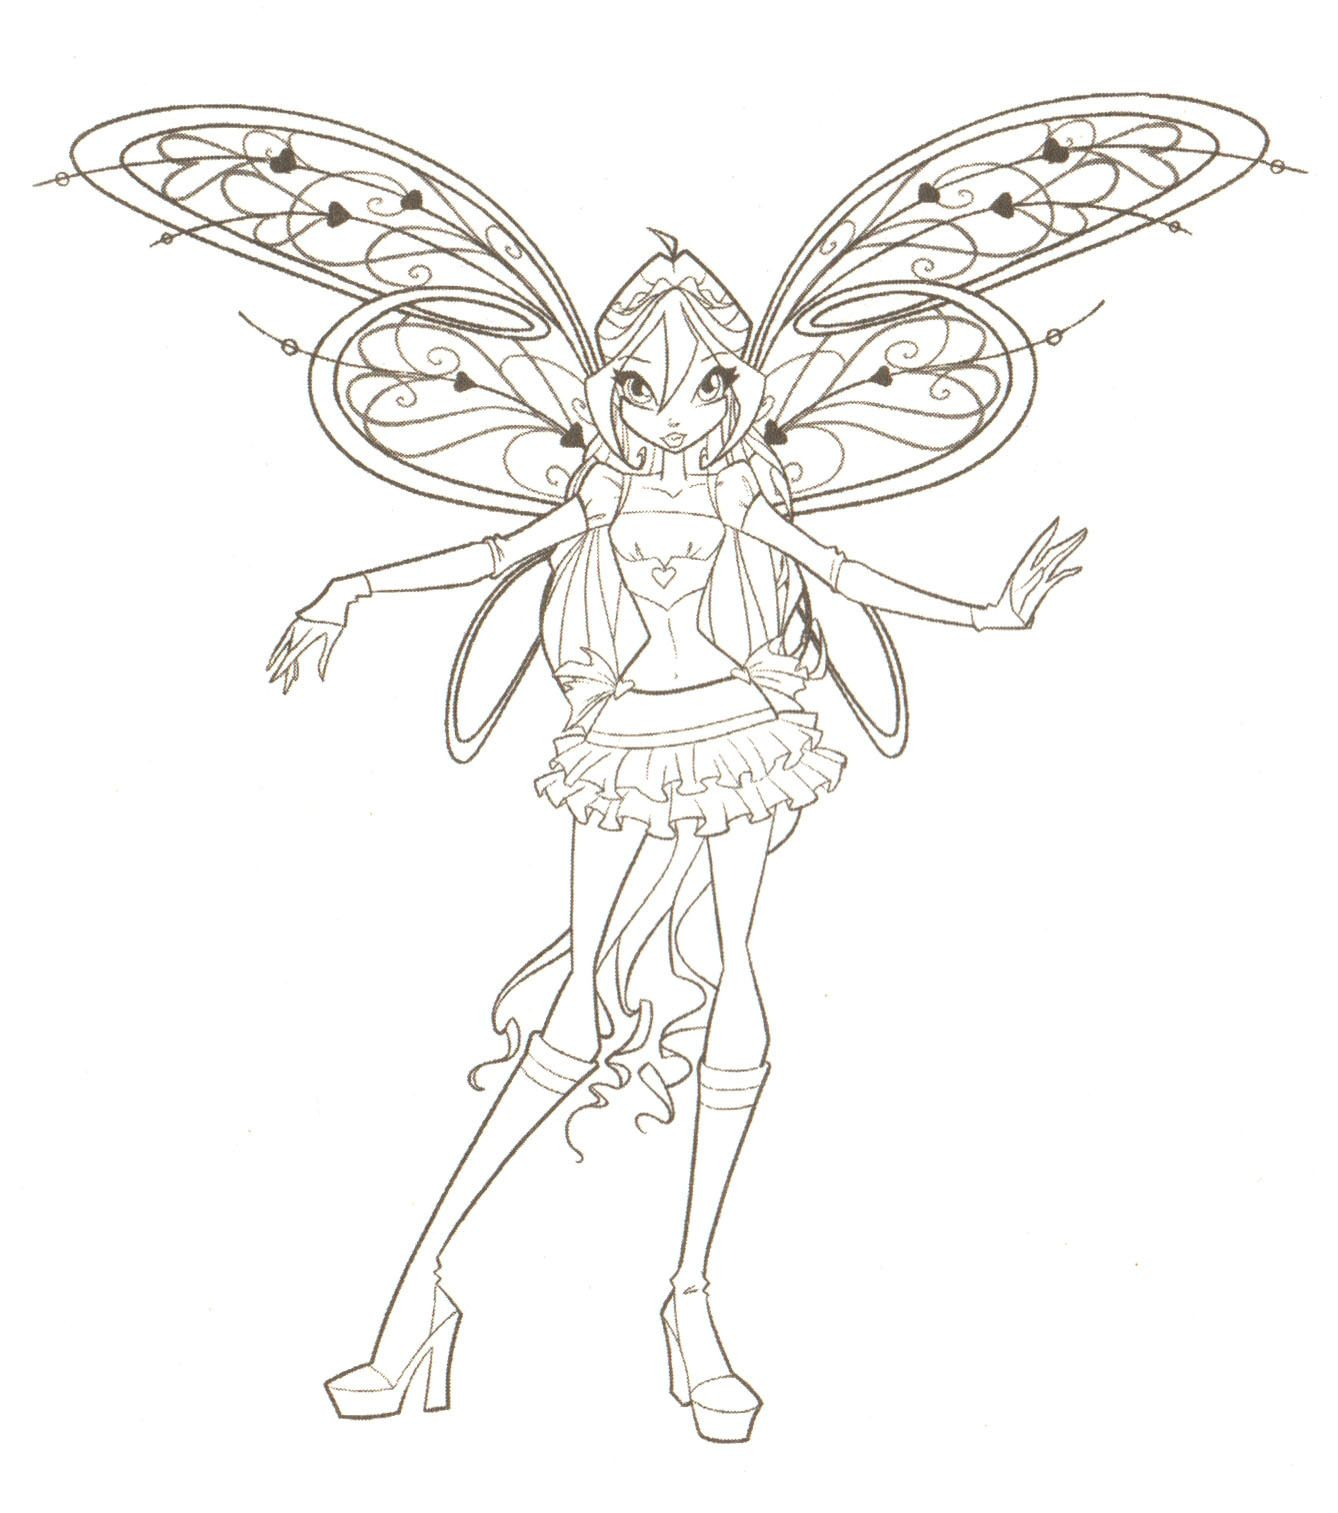 Free printable winx club coloring pages - Fairies To Print And Color Winx Club Coloring Pages Winxclub Photo 18537794 Printable Valentinefree